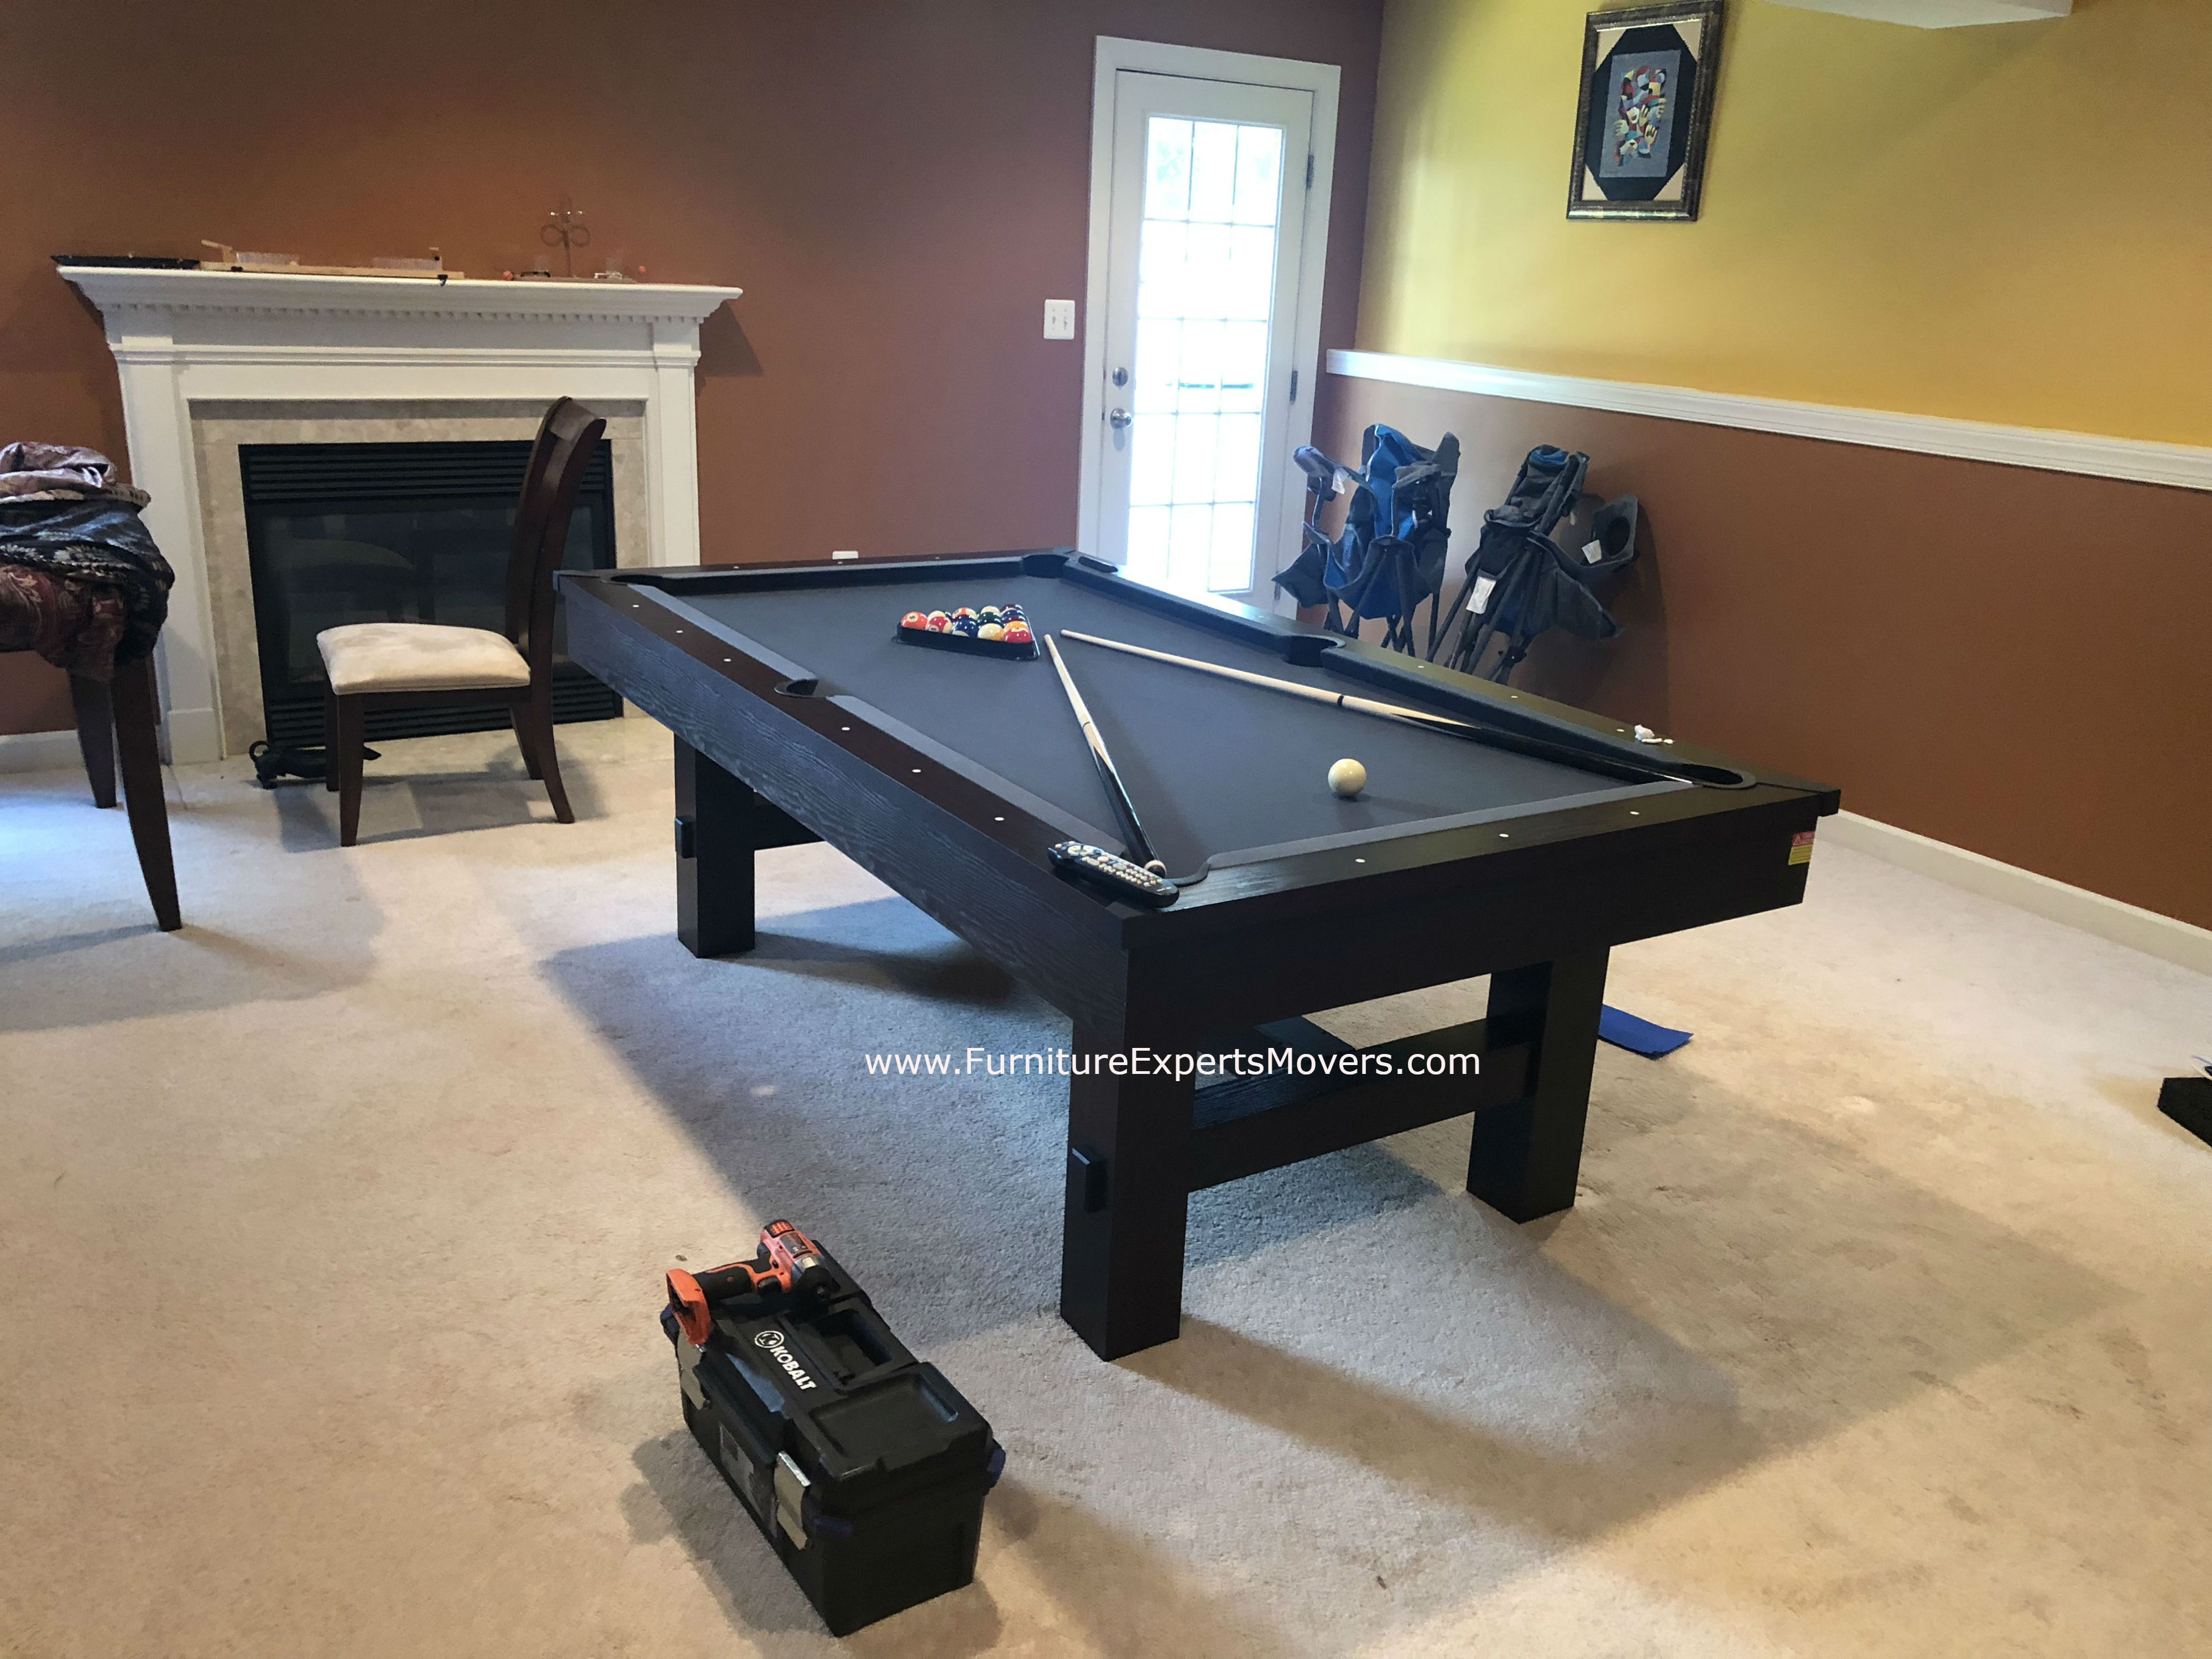 BILLIARD POOL TABLE MOVERS Disassembly Relocation Balancing - Pool table movers delaware